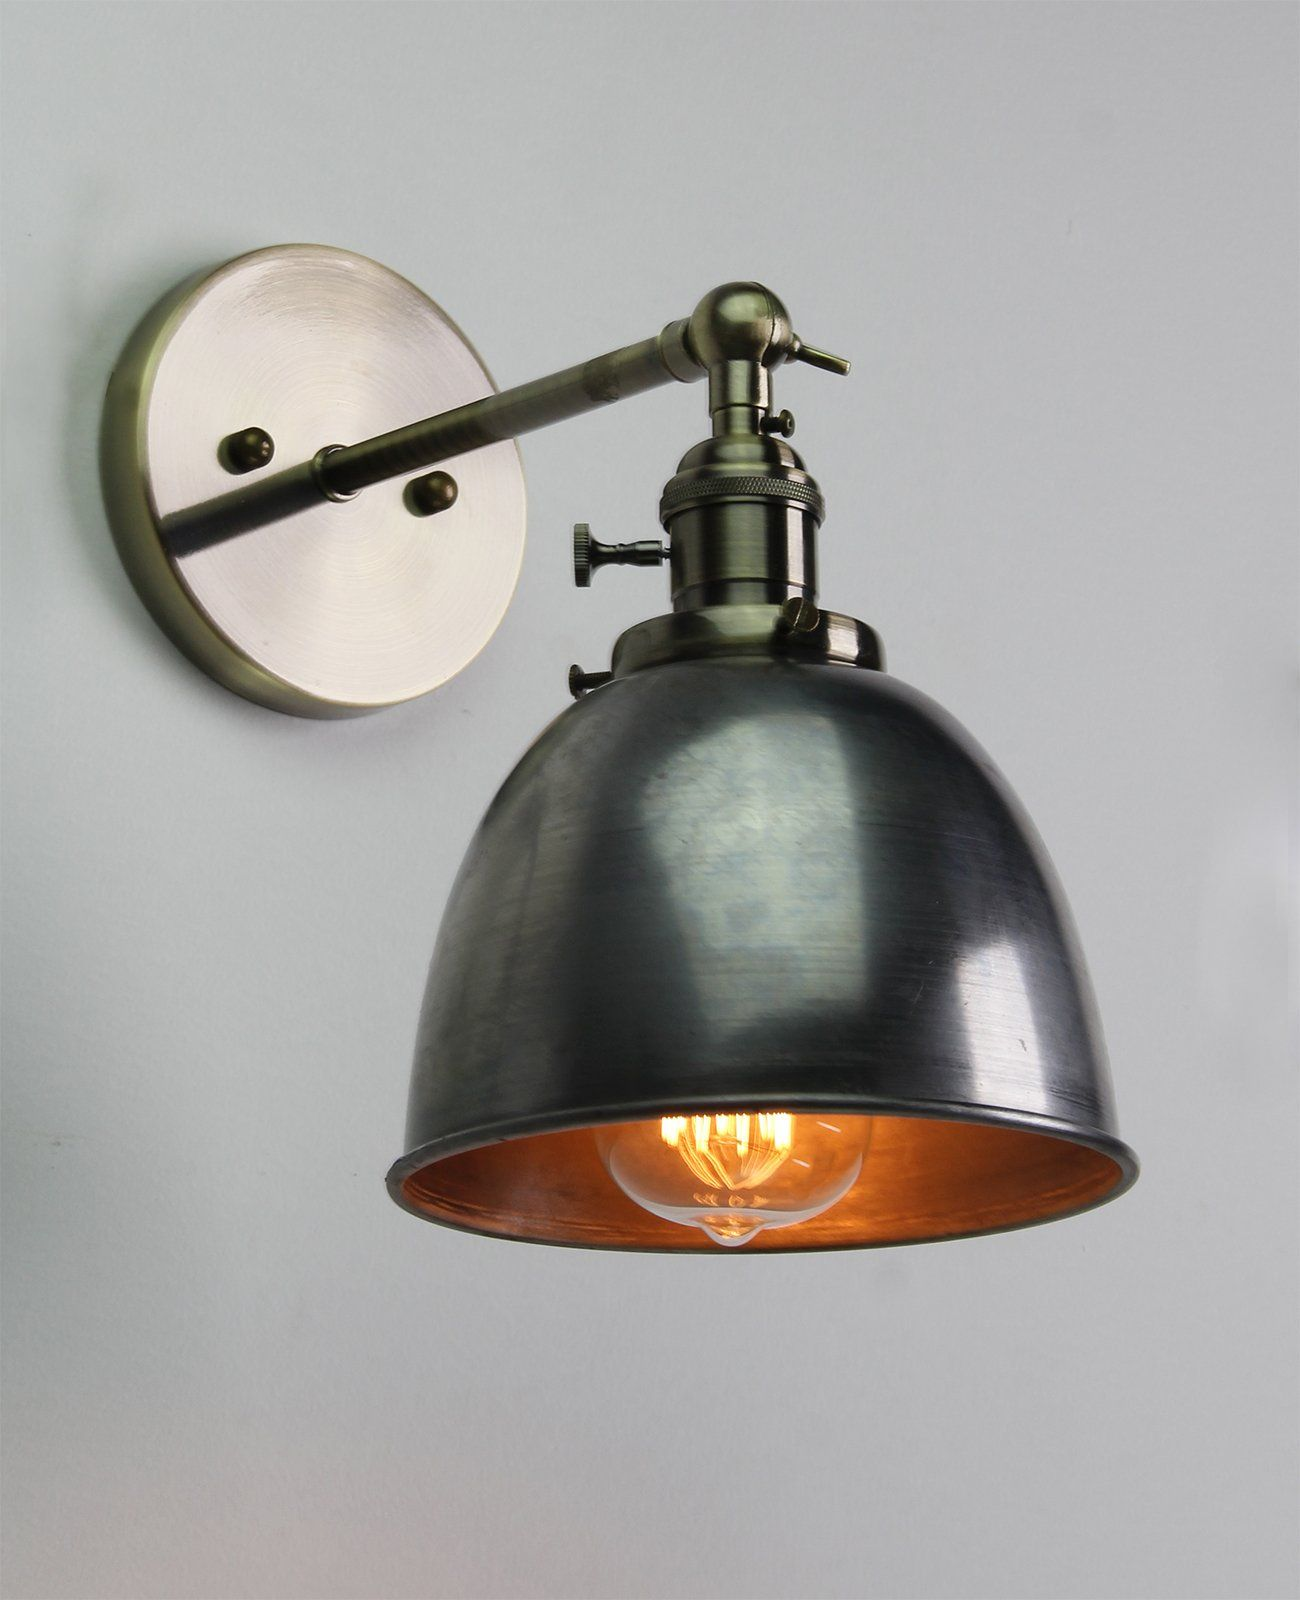 Buyee Modern Vintage Industrial Metal Shade Loft Coffee Bar Kitchen Orlando Wire Cage Retro Sconce Wall Light Brass Scone Lamp Gold Amazoncouk Lighting